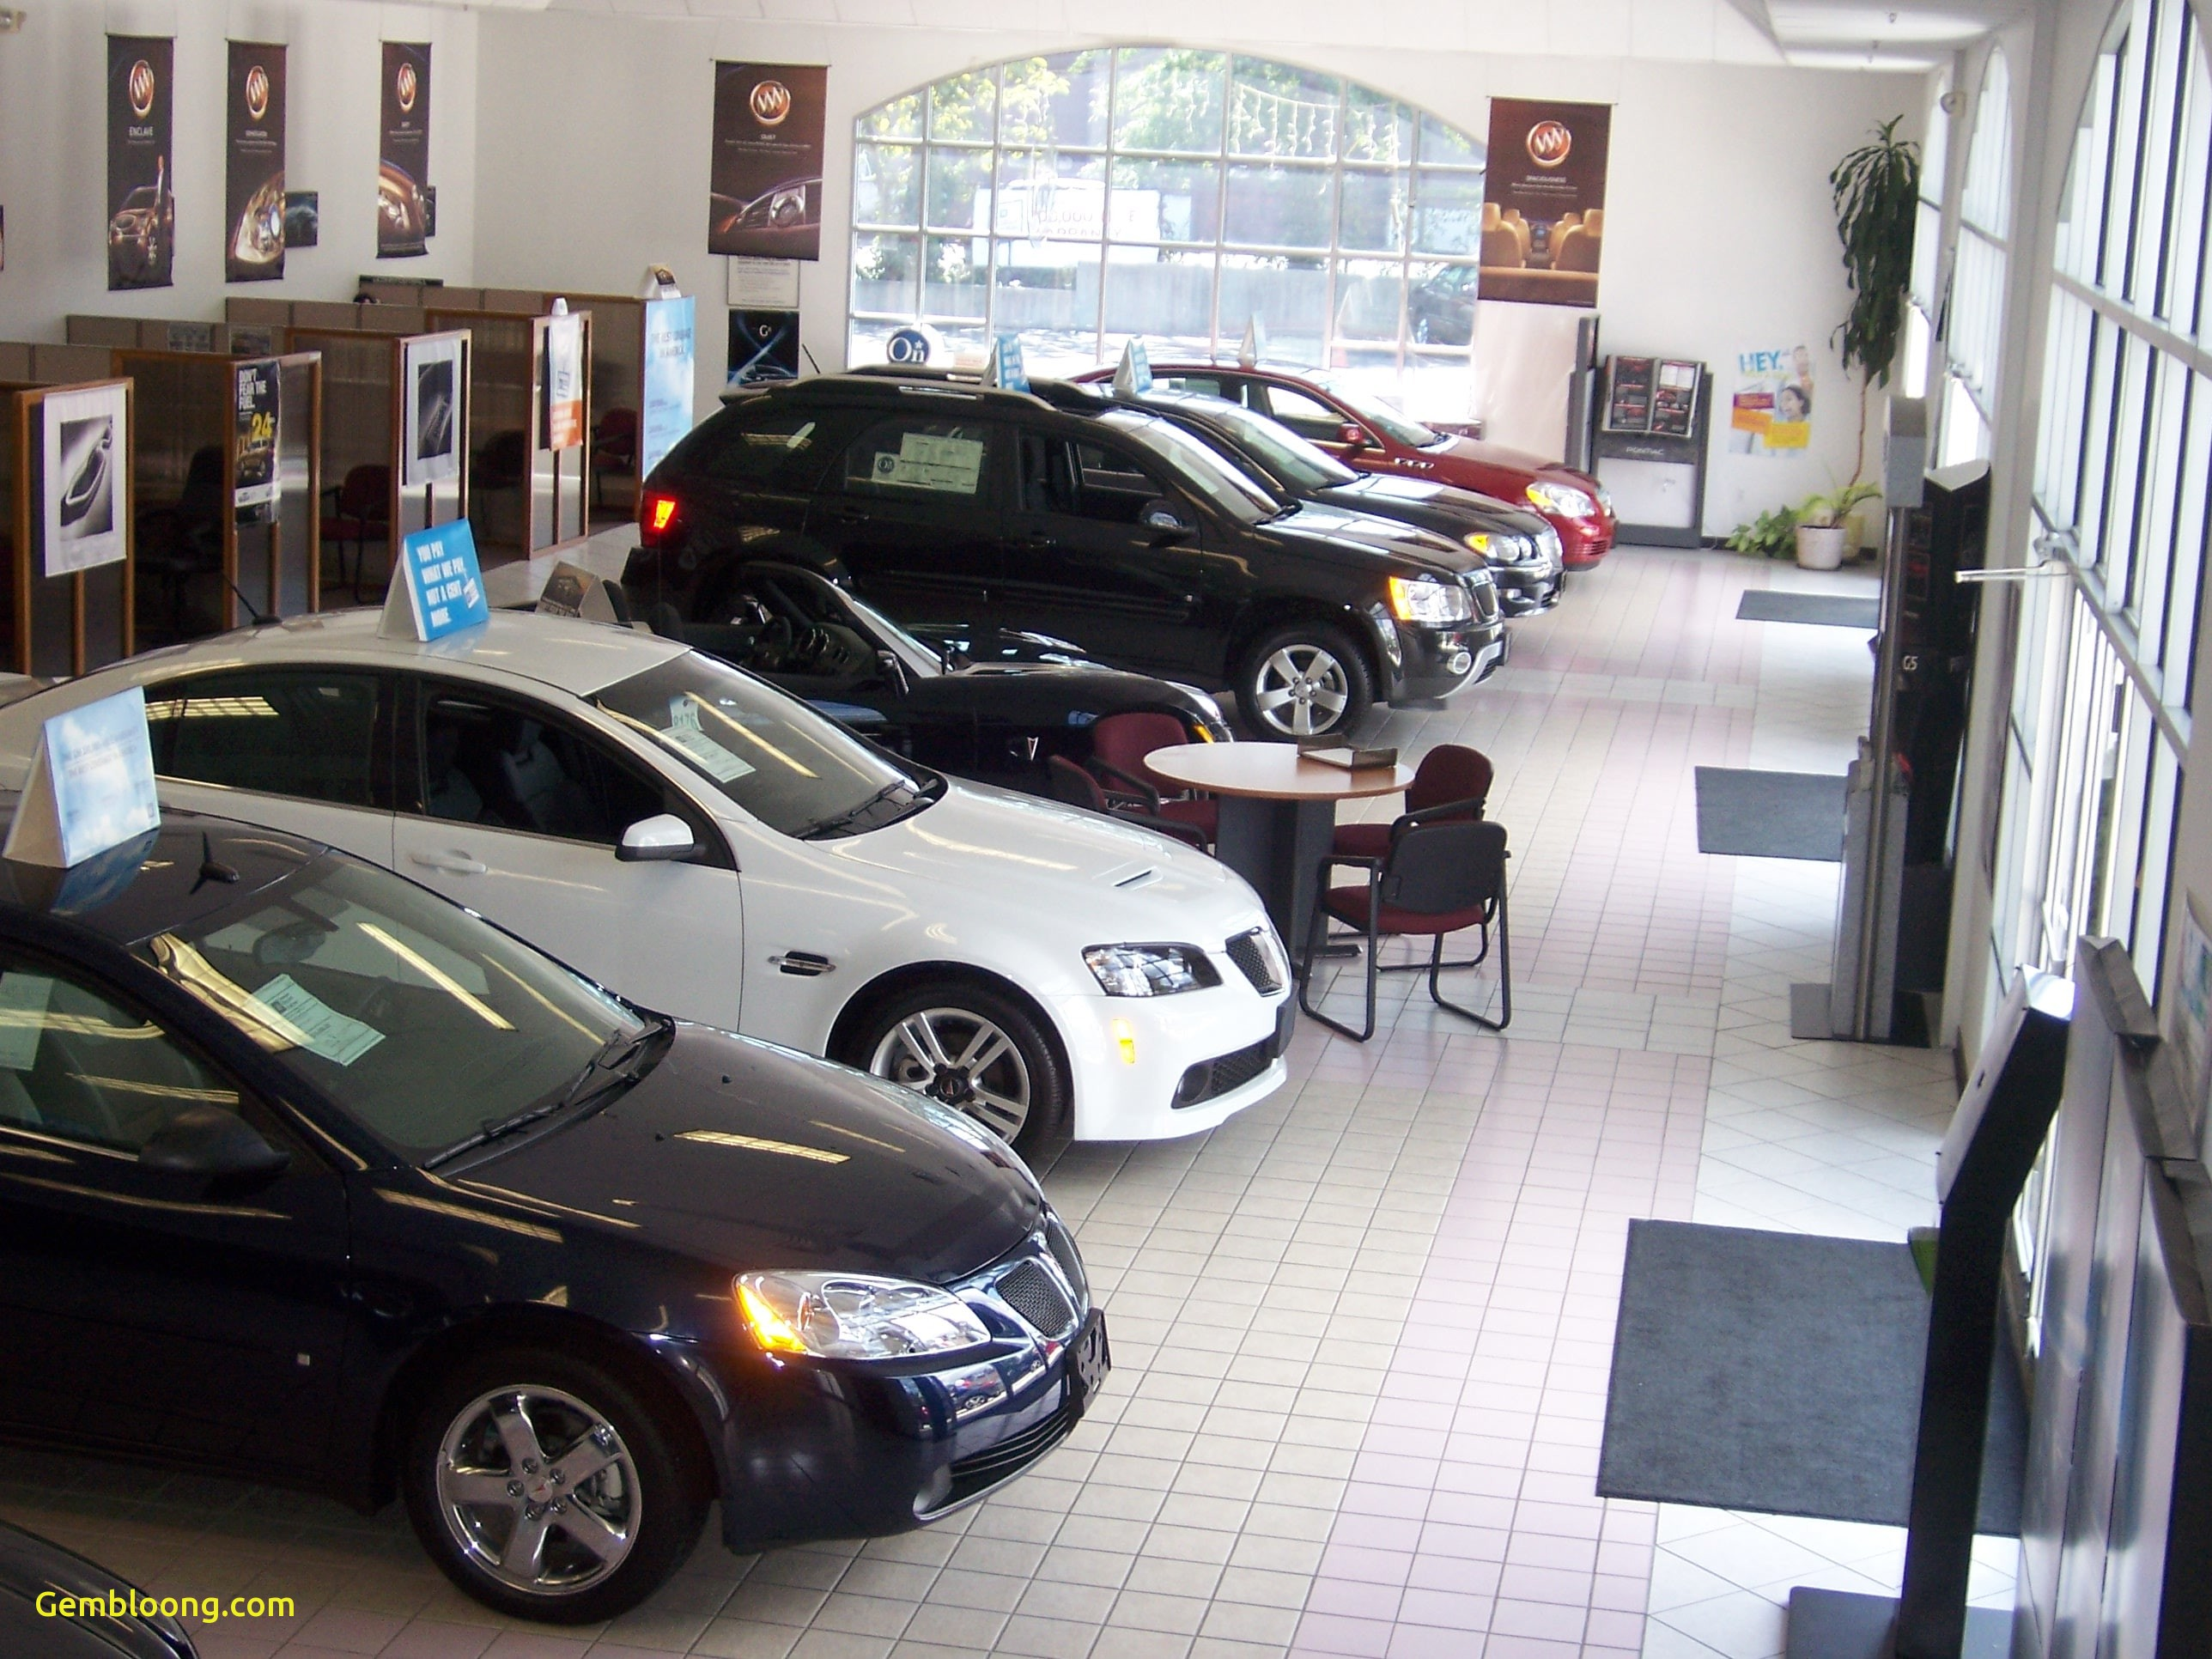 used car dealership near me automotive image source automotivecarsnet